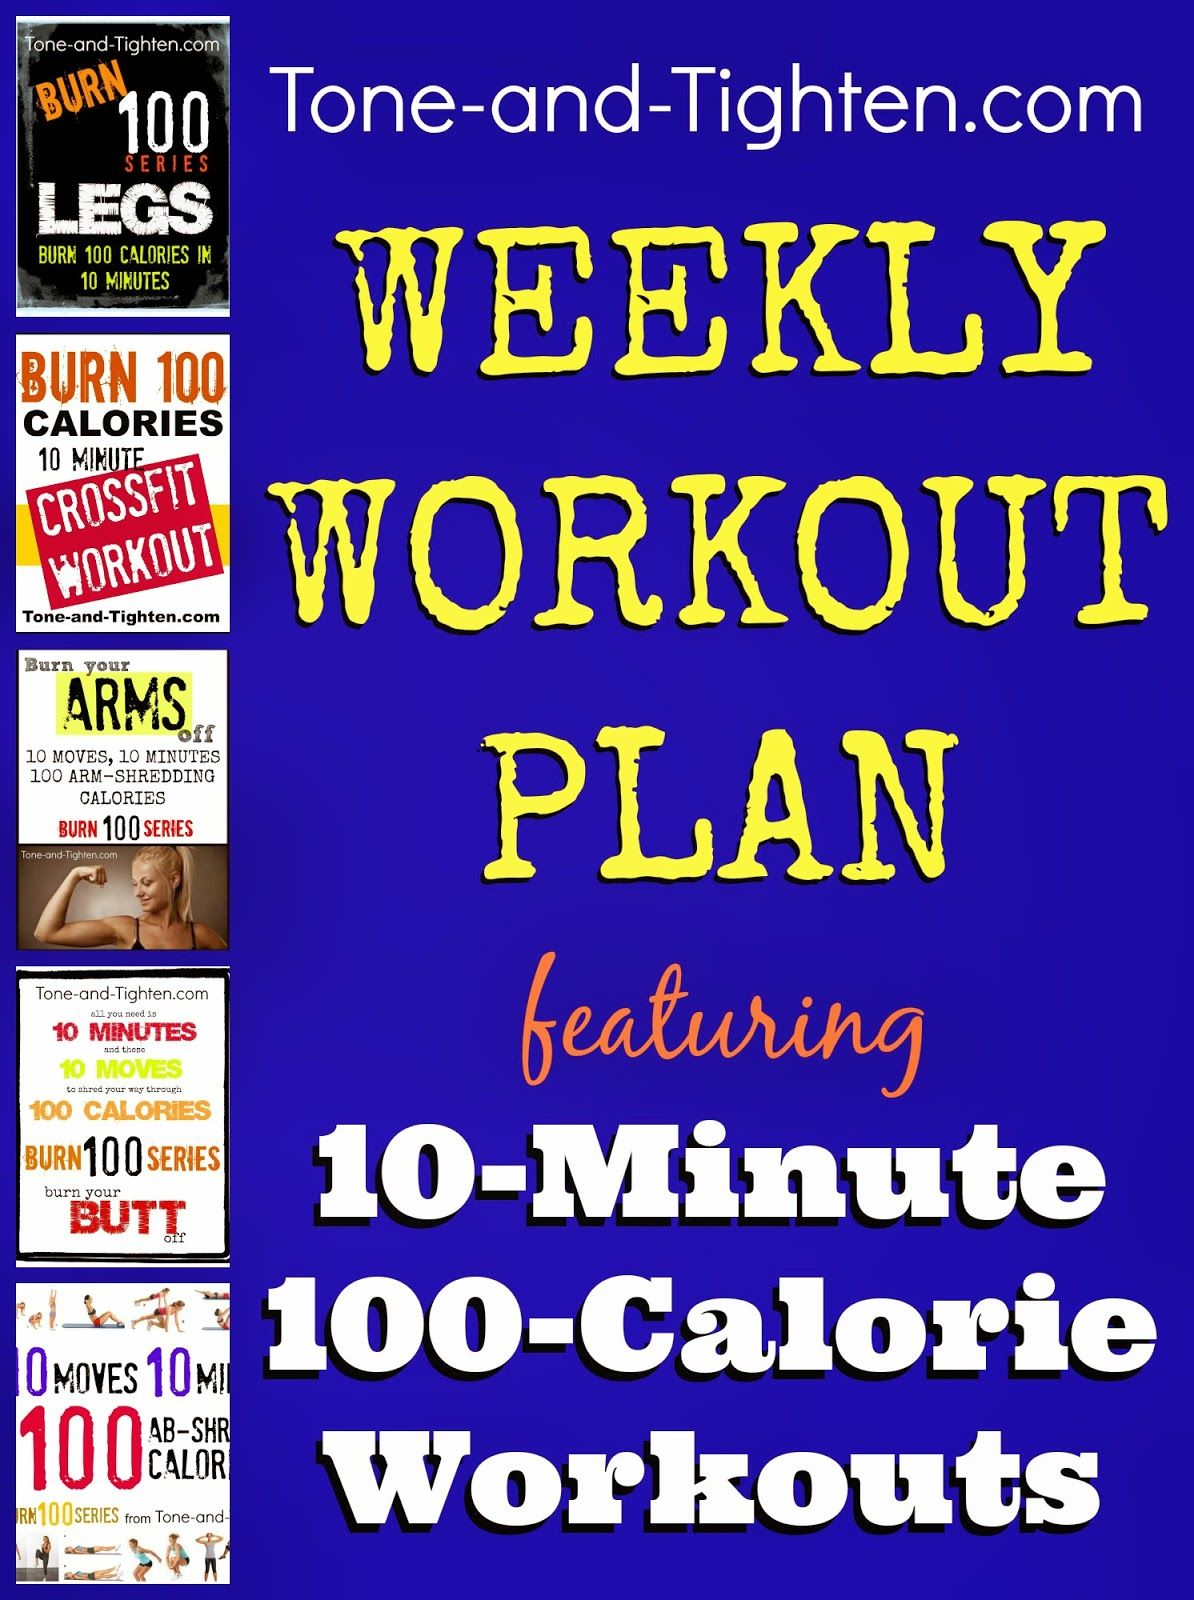 Weekly Workout Plan  Minute Workouts To Burn  Calories